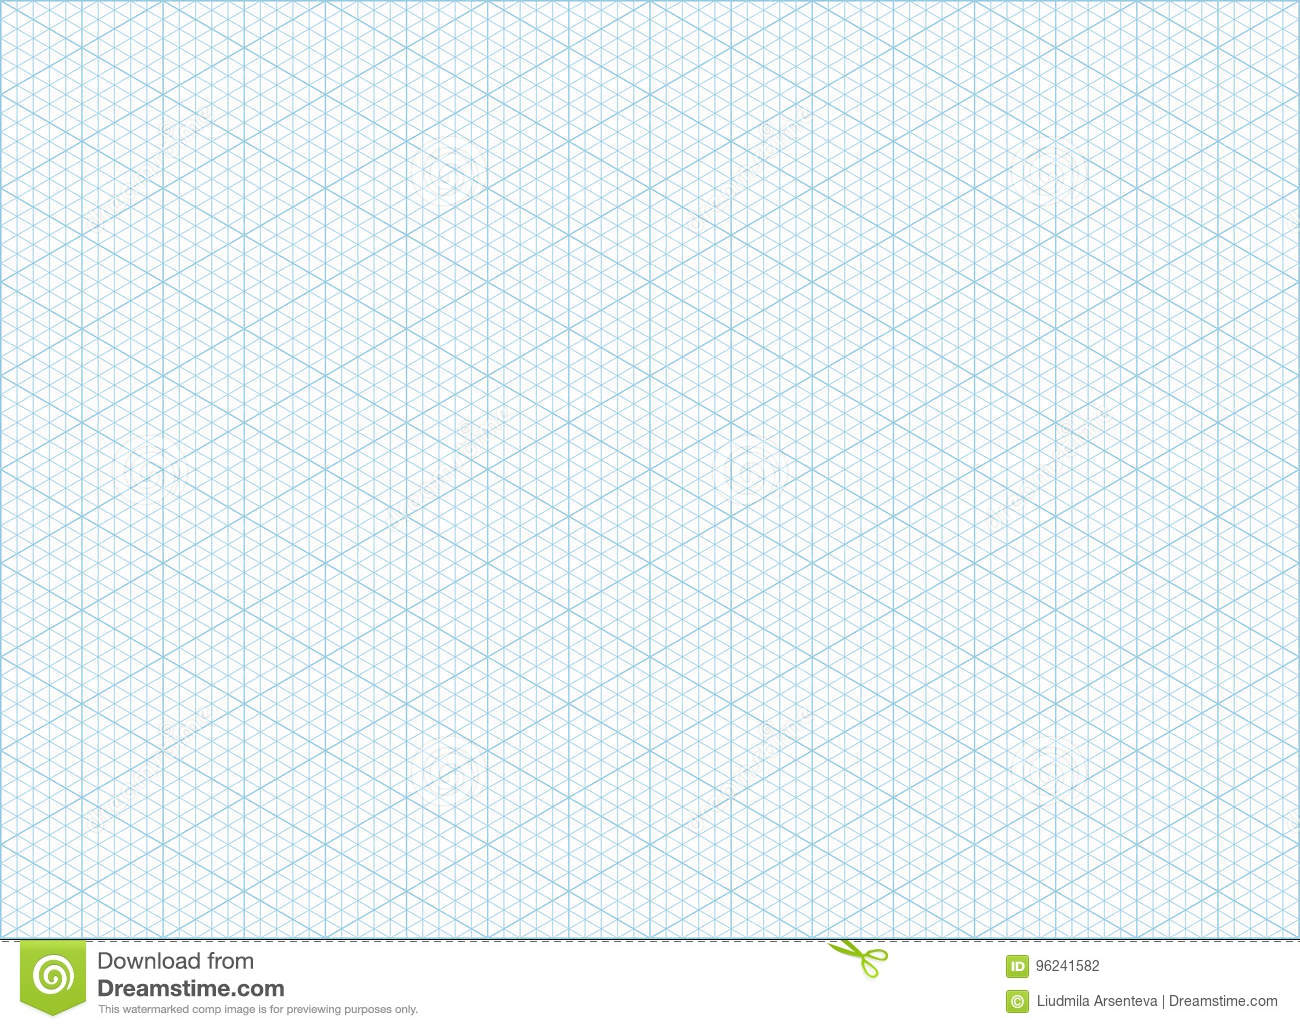 Isometric grid graph paper background stock vector for Landscape design paper